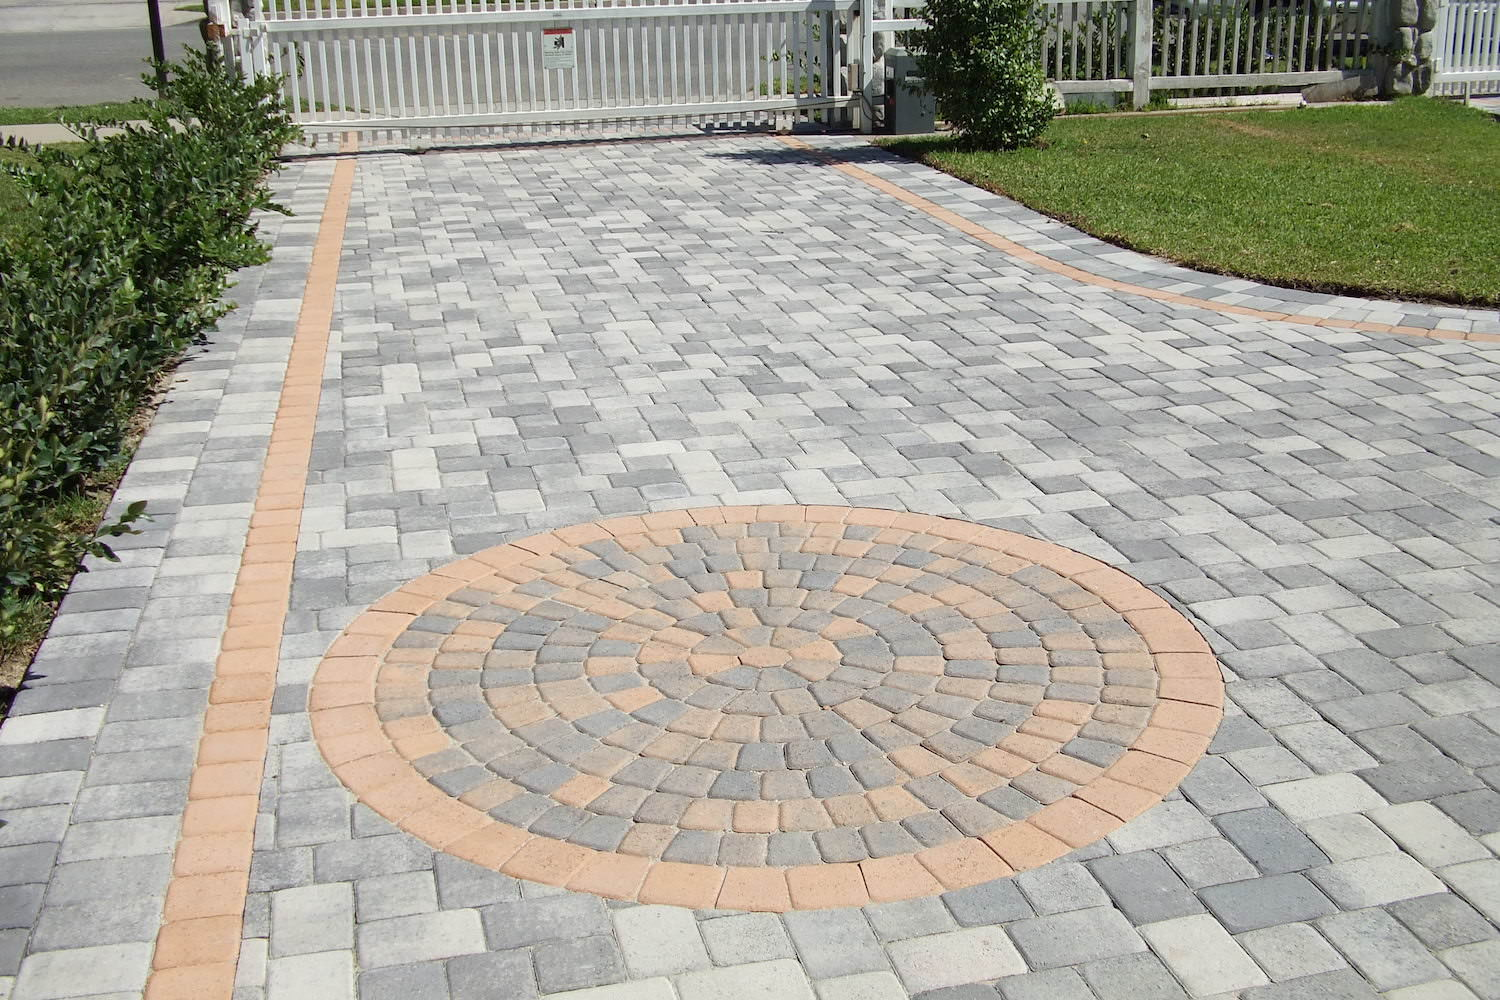 brick driveway designing unique driveway brick paving patterns are just one way to give OUDOGSU